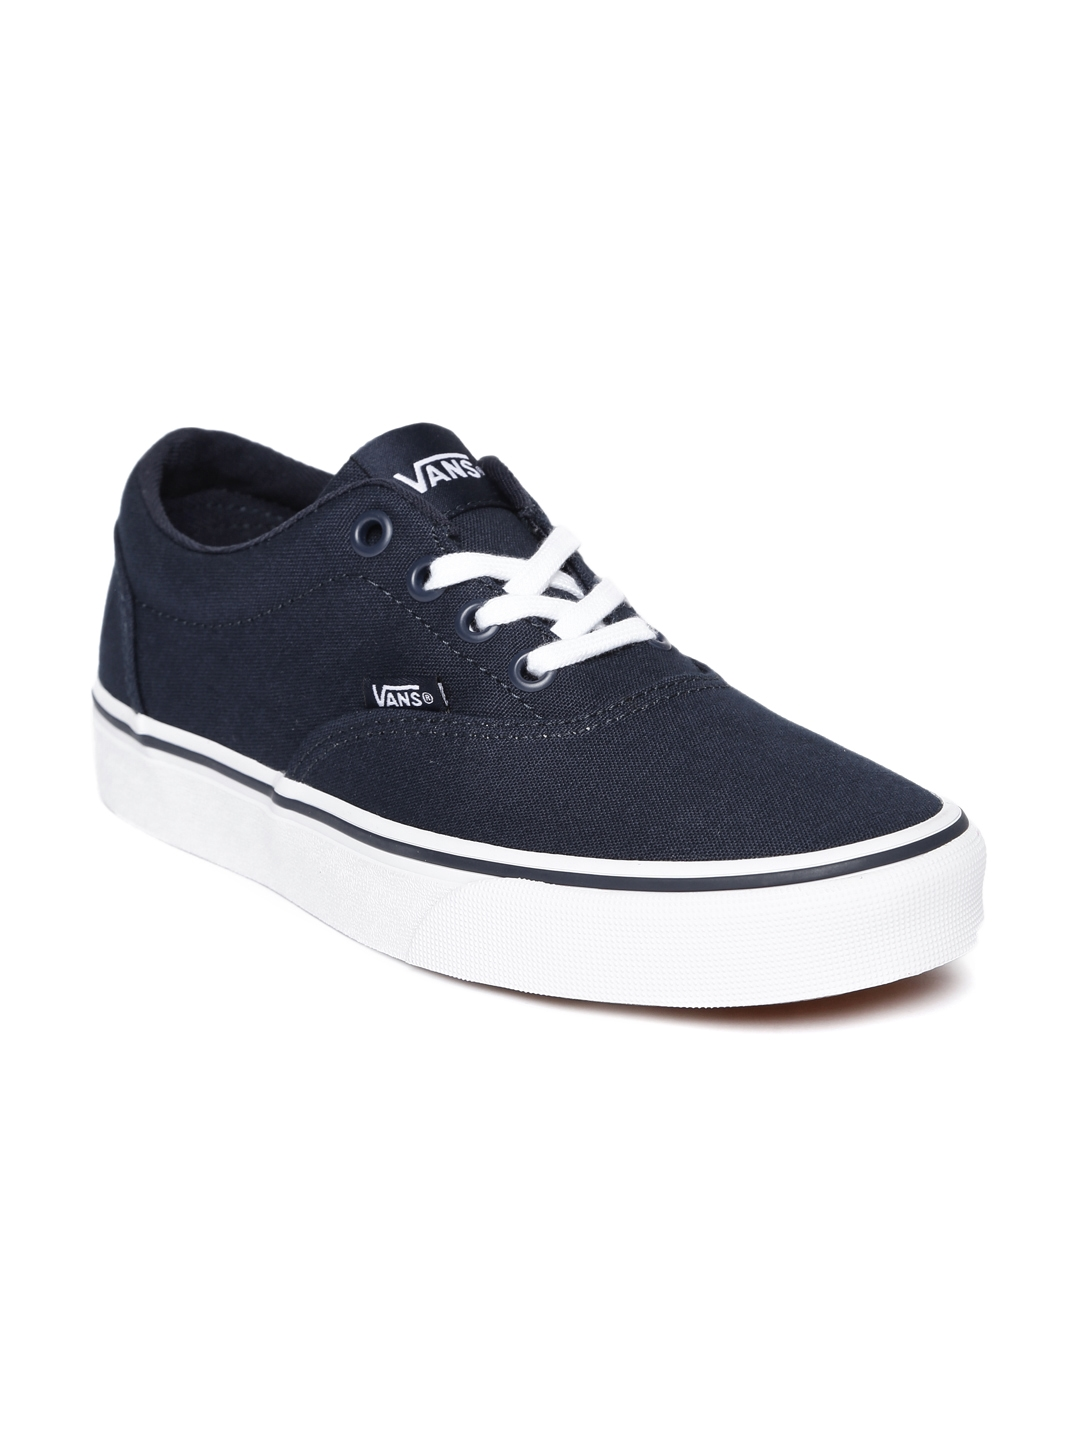 59b6effc31 Buy Vans Women Navy Blue Solid Doheny Sneakers - Casual Shoes for ...